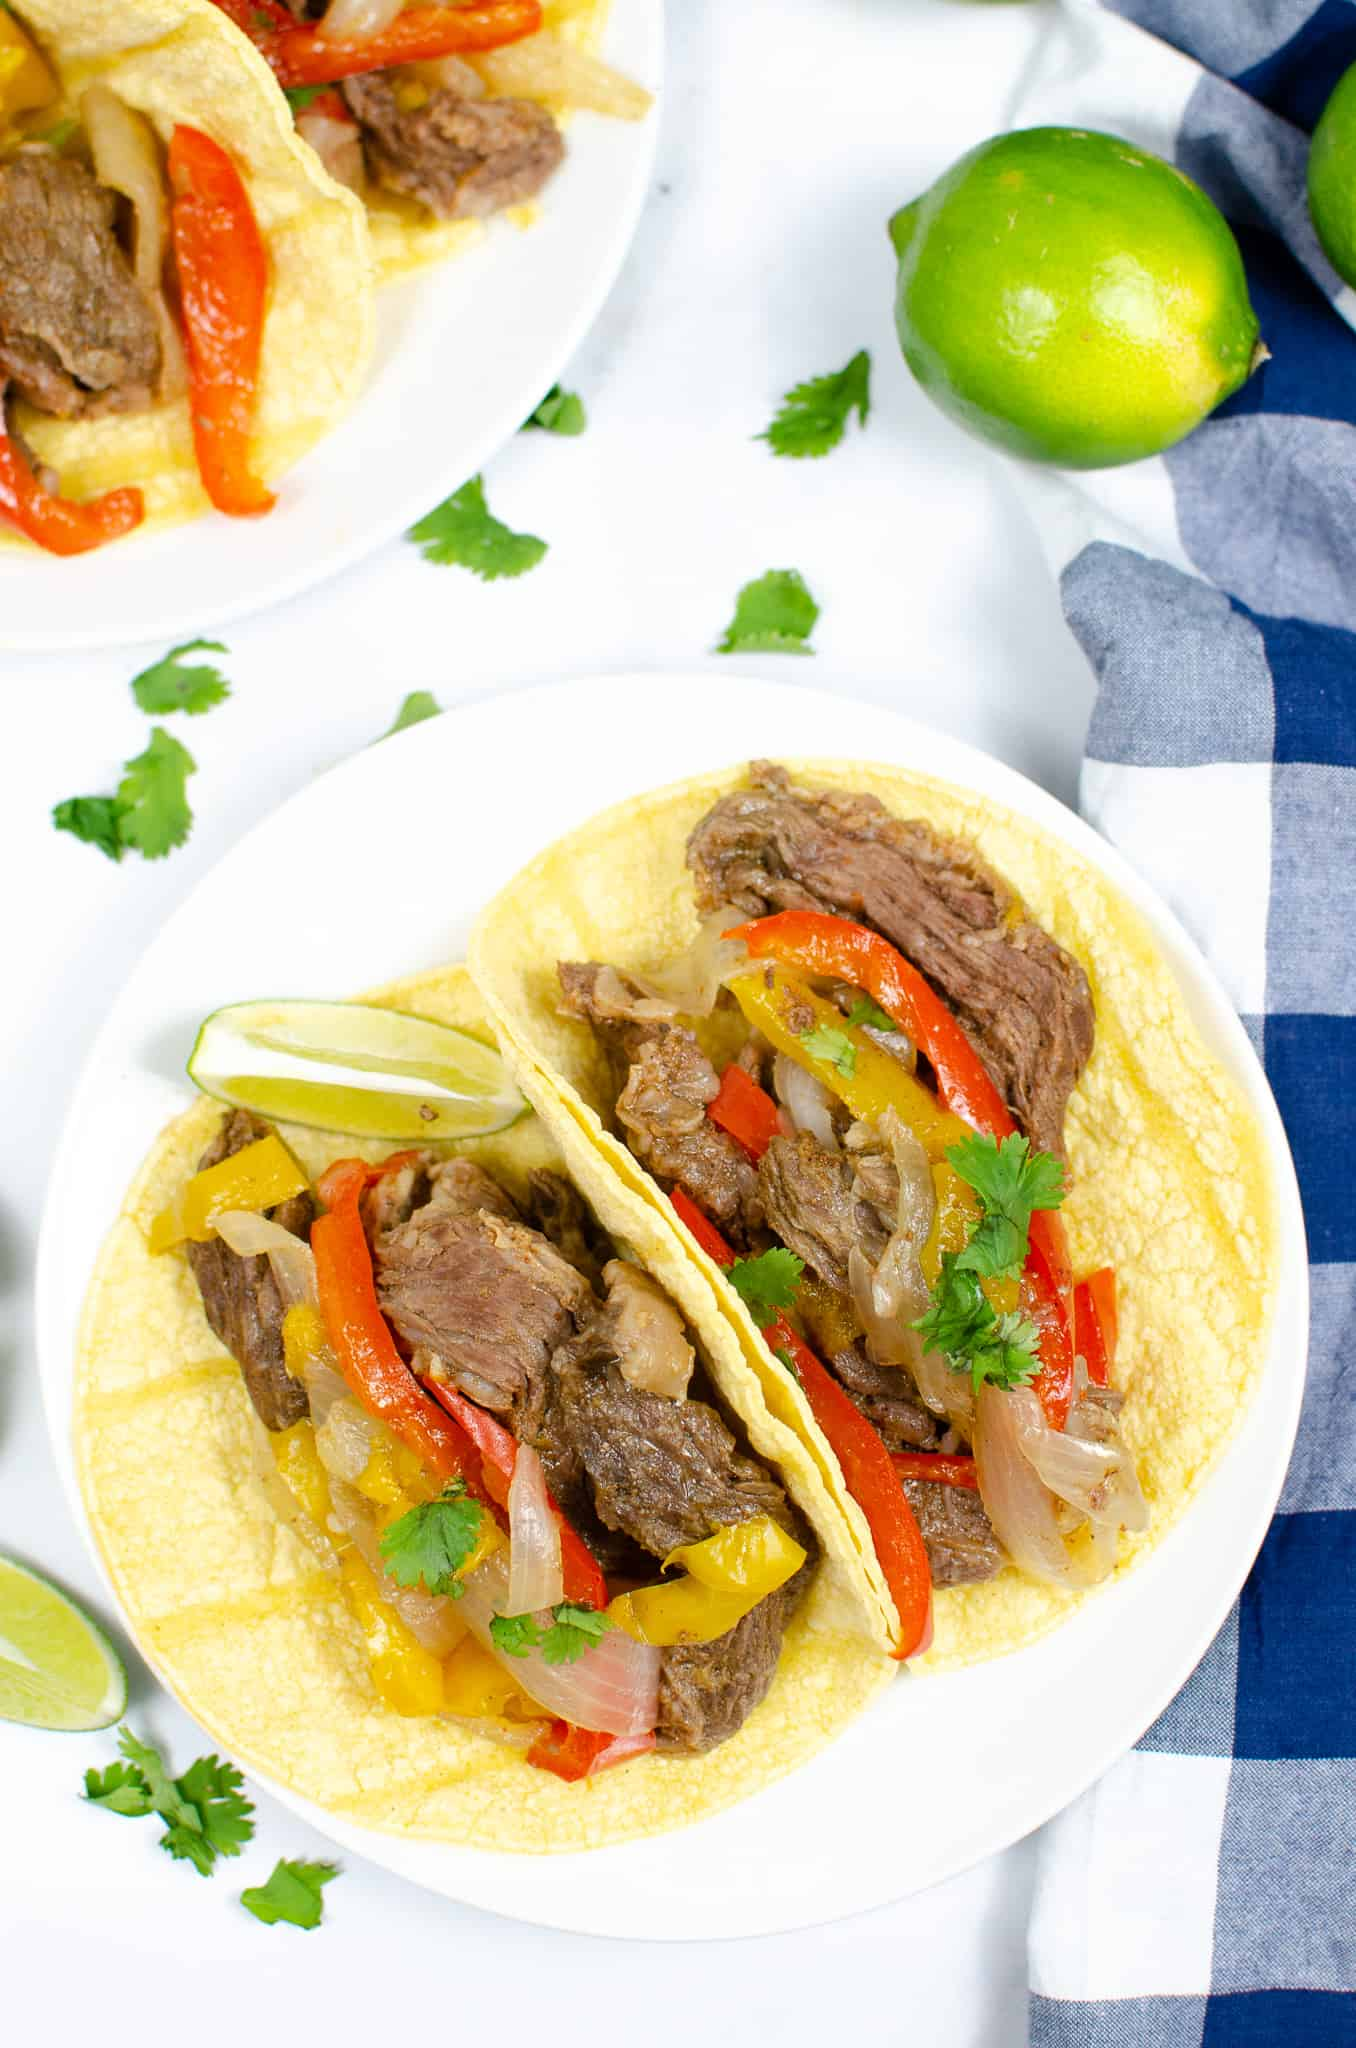 Steak Fajitas in shells on white plate with blue and white check napkin